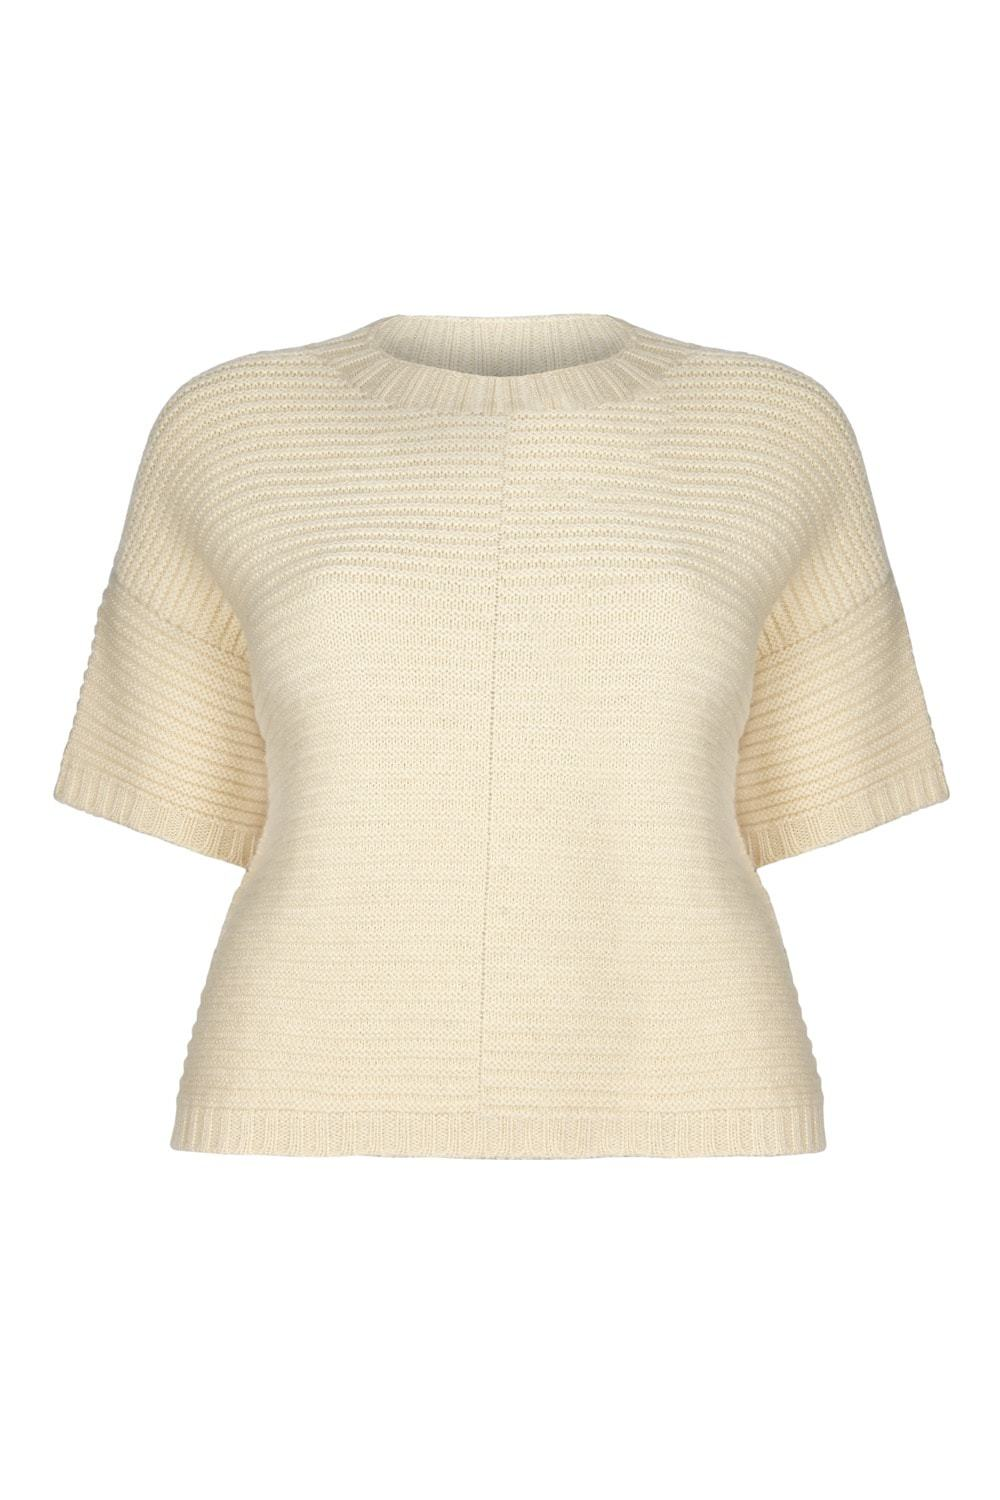 Ally Bee Cream Poncho jumper in ethical wool